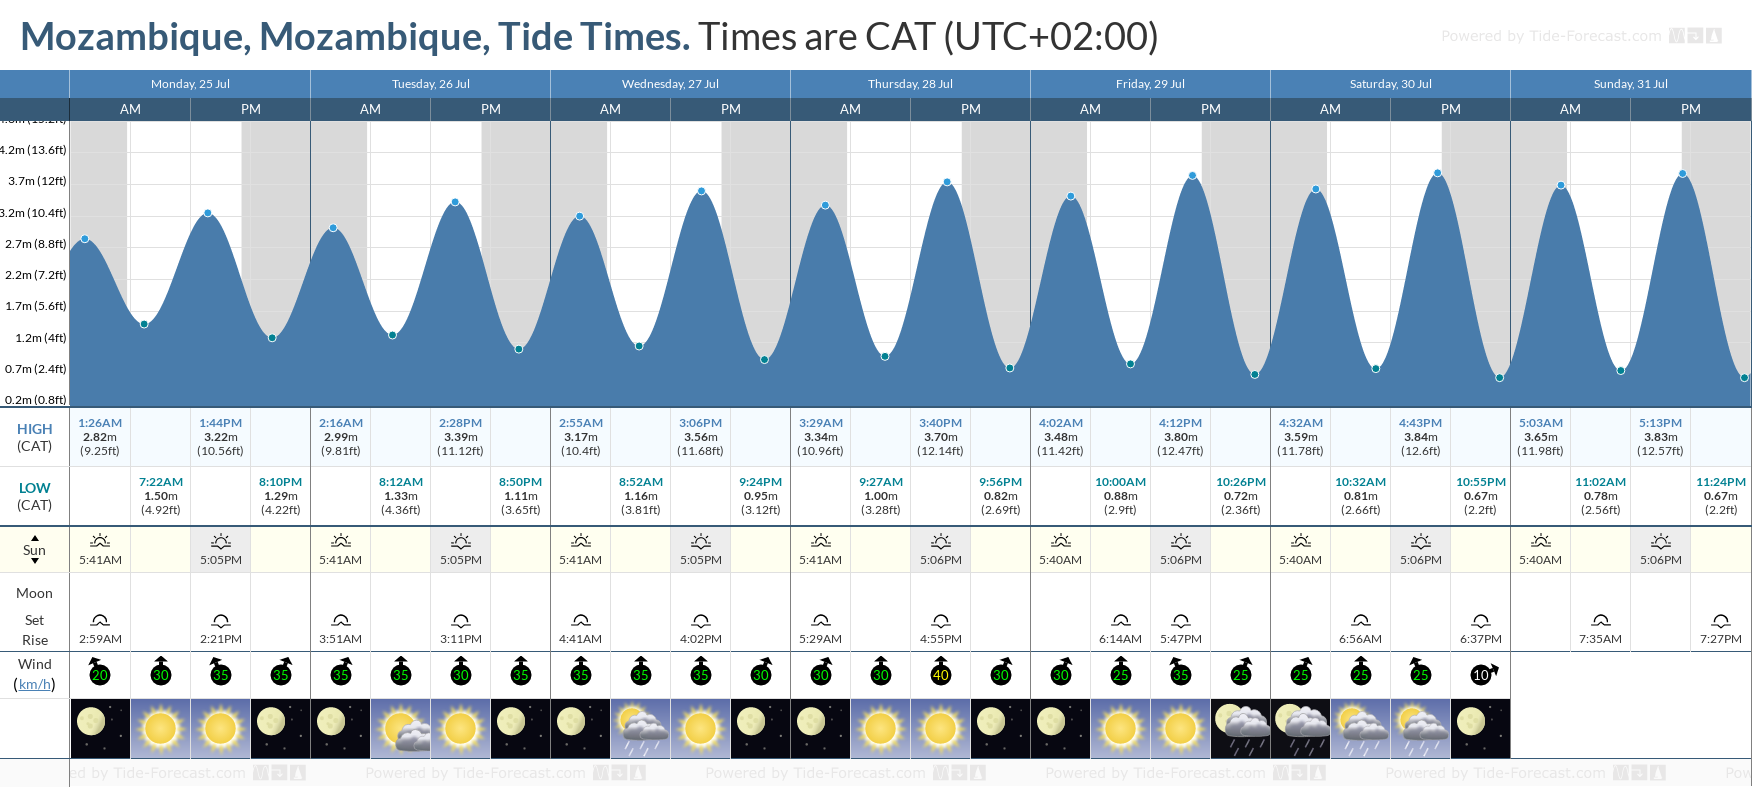 Mozambique, Mozambique Tide Chart including high and low tide tide times for the next 7 days